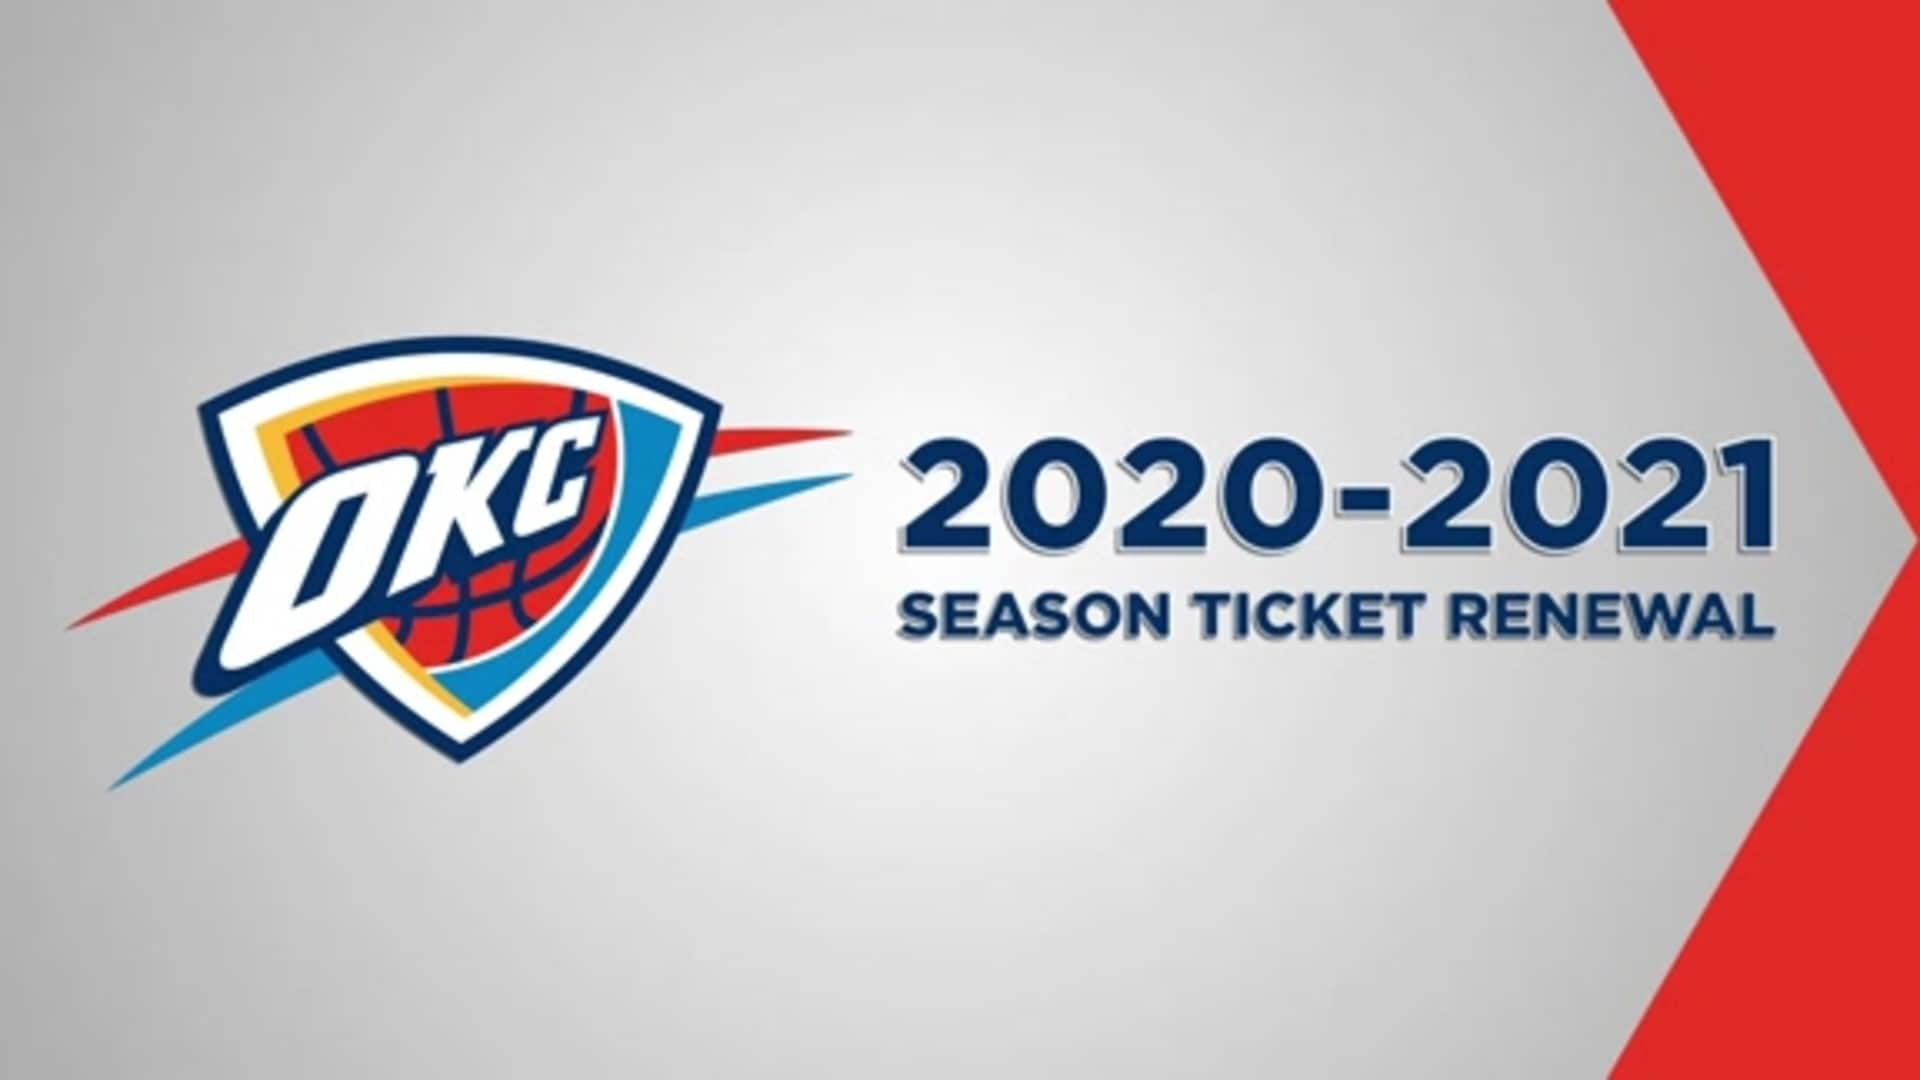 Season Ticket Renewal 2020-21